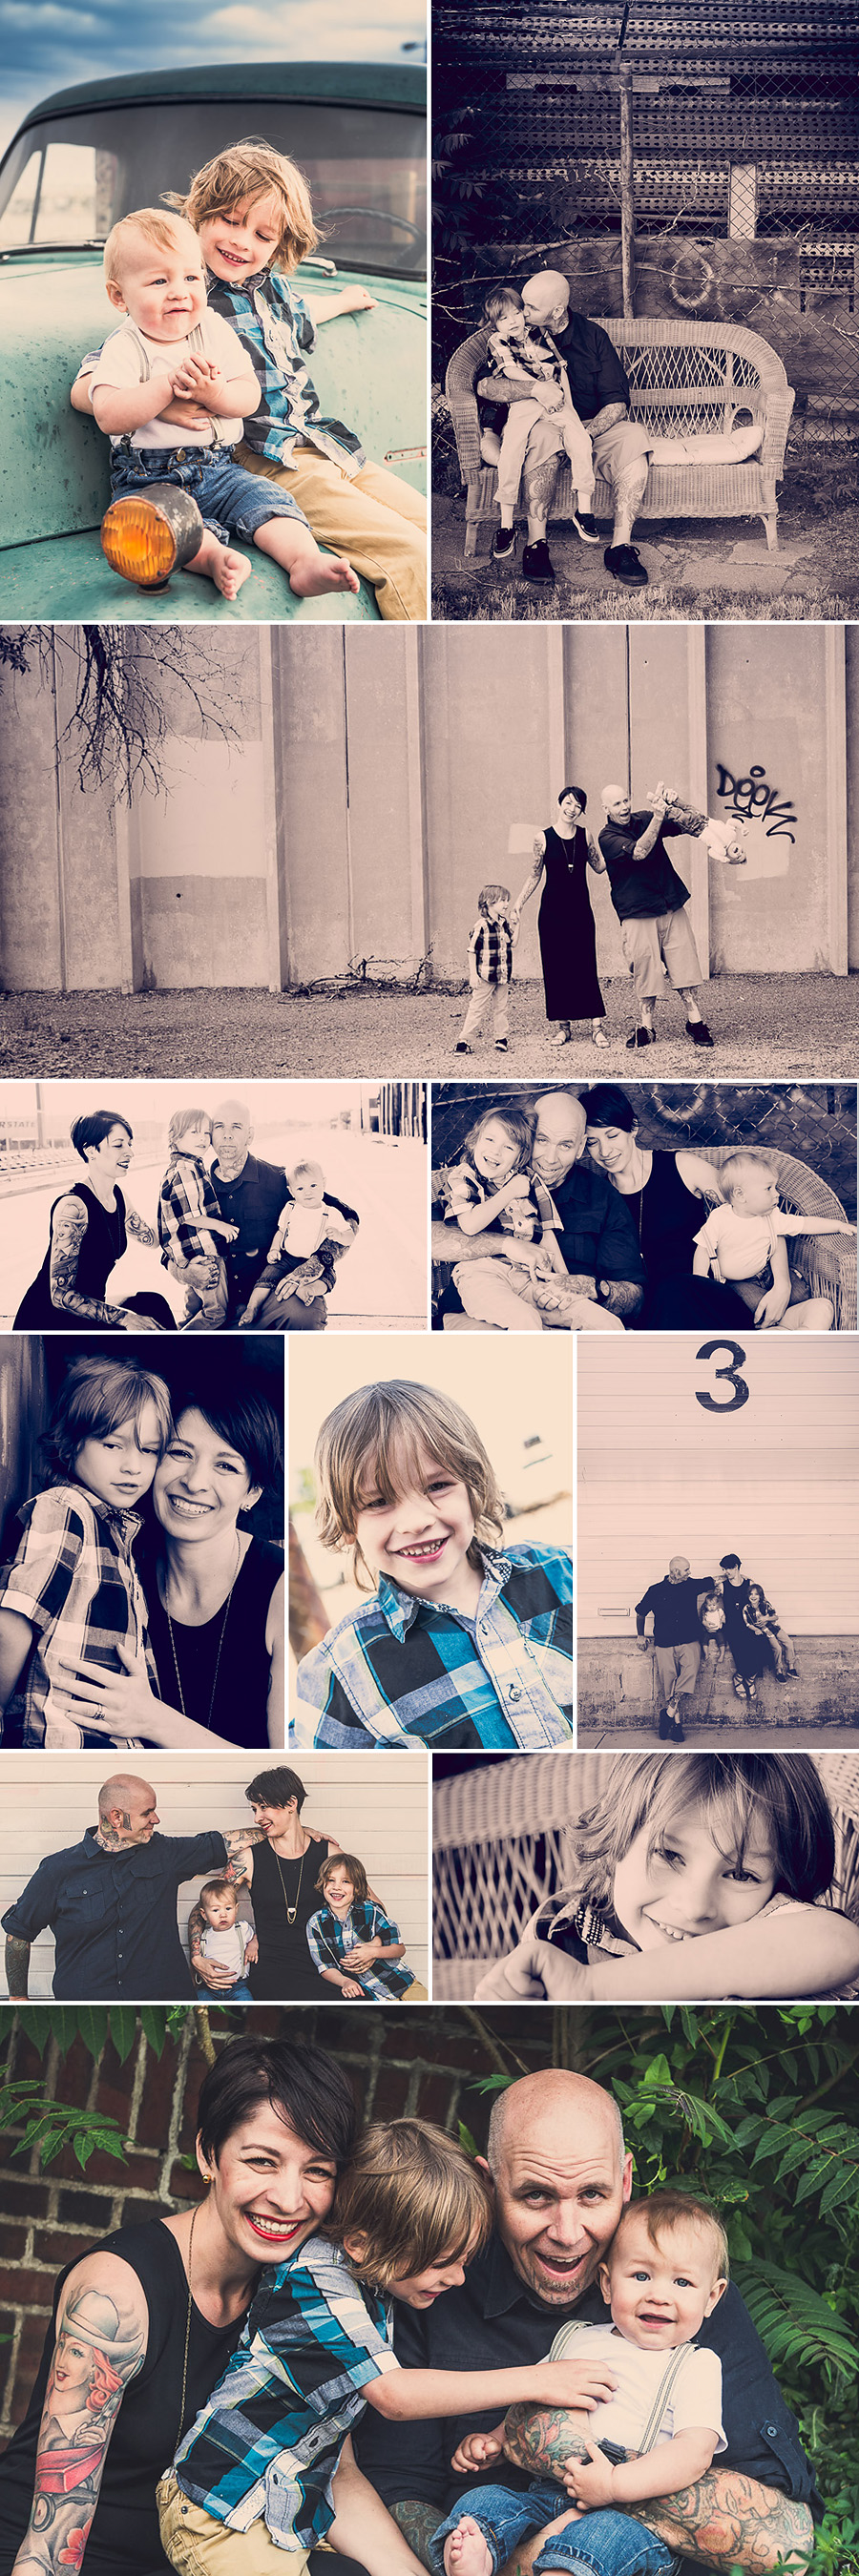 Denver RiNo Family Photography collage Hydle 3